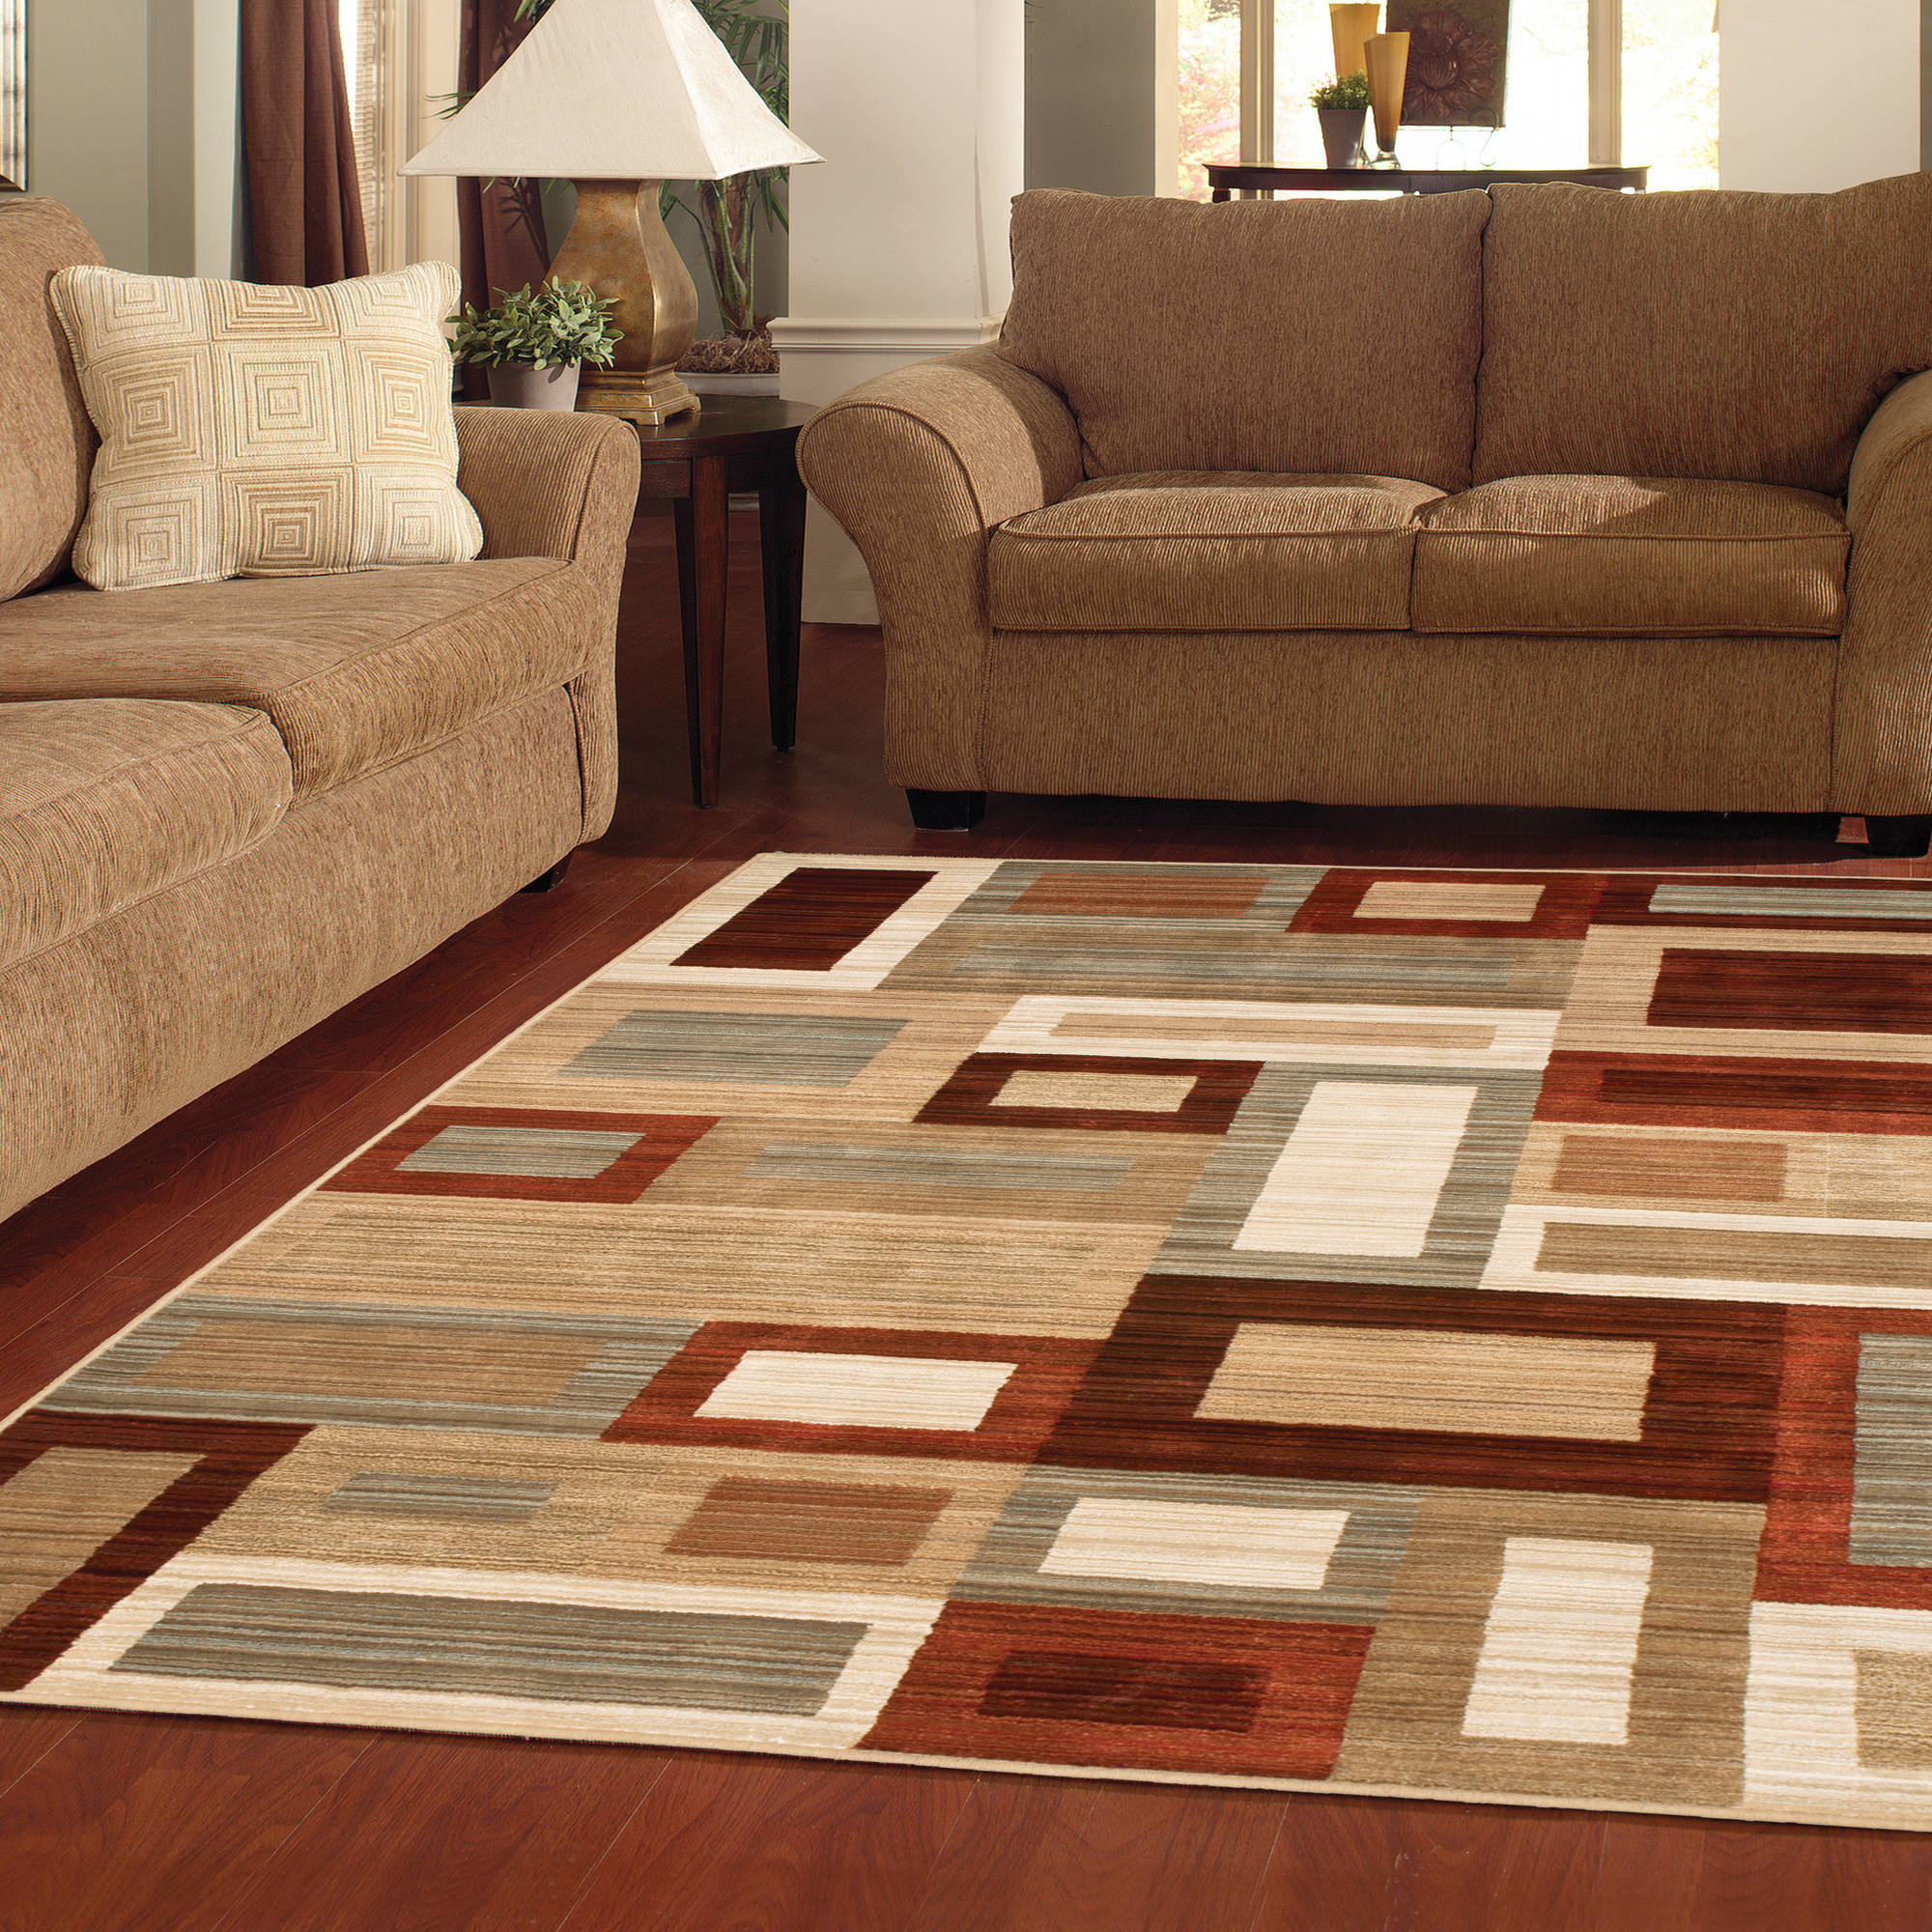 Rug Buying Guide: Everything You Need To Know   Walmart.com